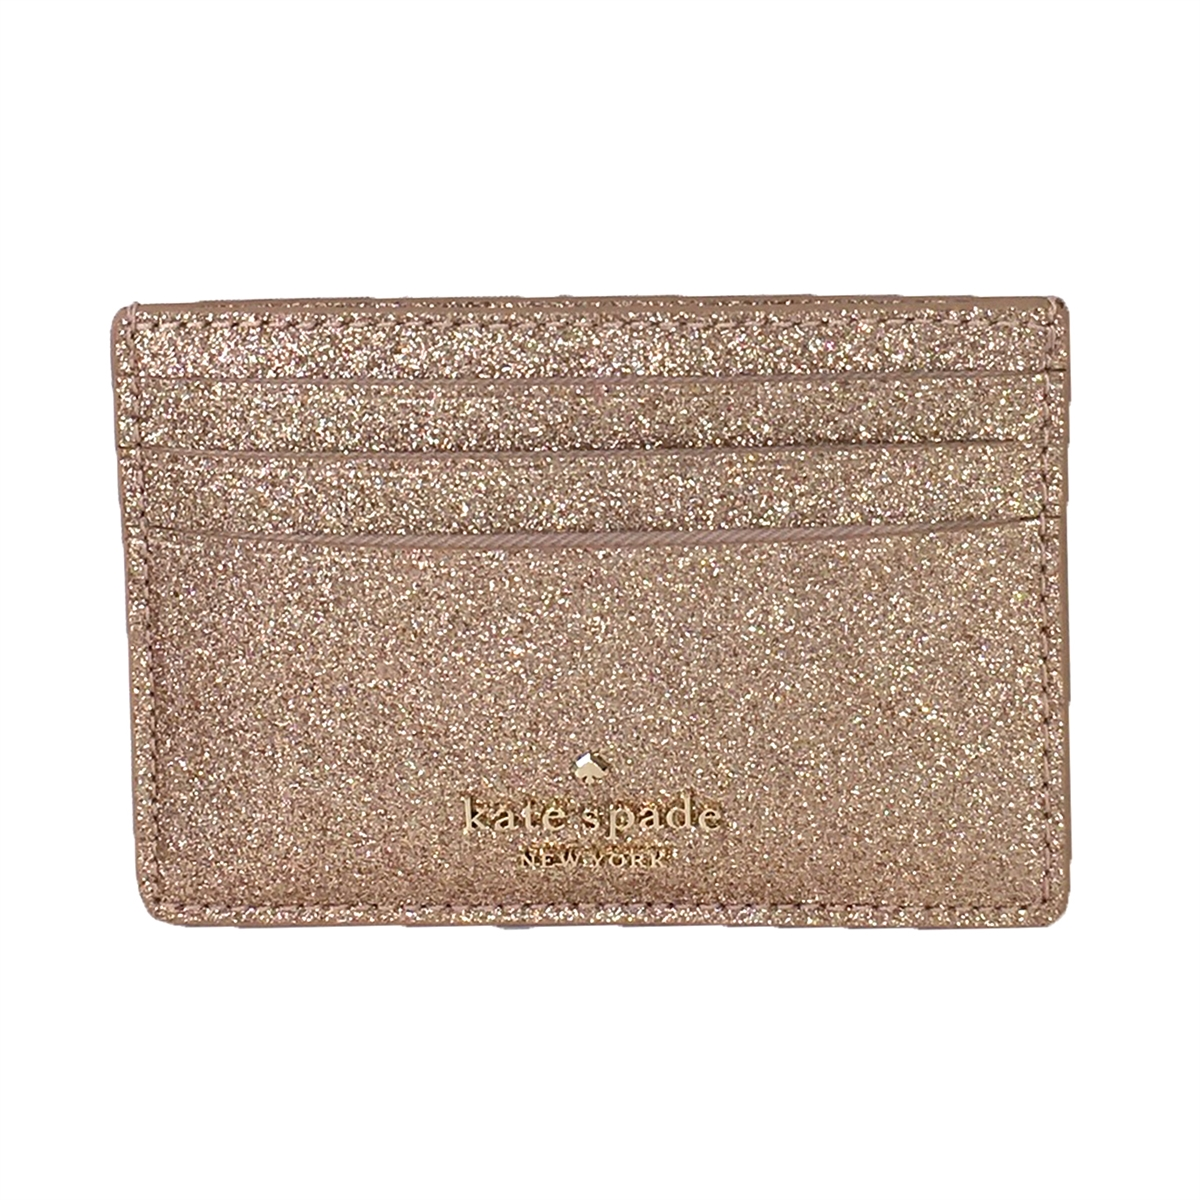 We Love Our Margaux Zip Cardholder For Many Reasons First The 6 Exterior Slots Organizing Your Melange Of Credit And Coffee Cards Second